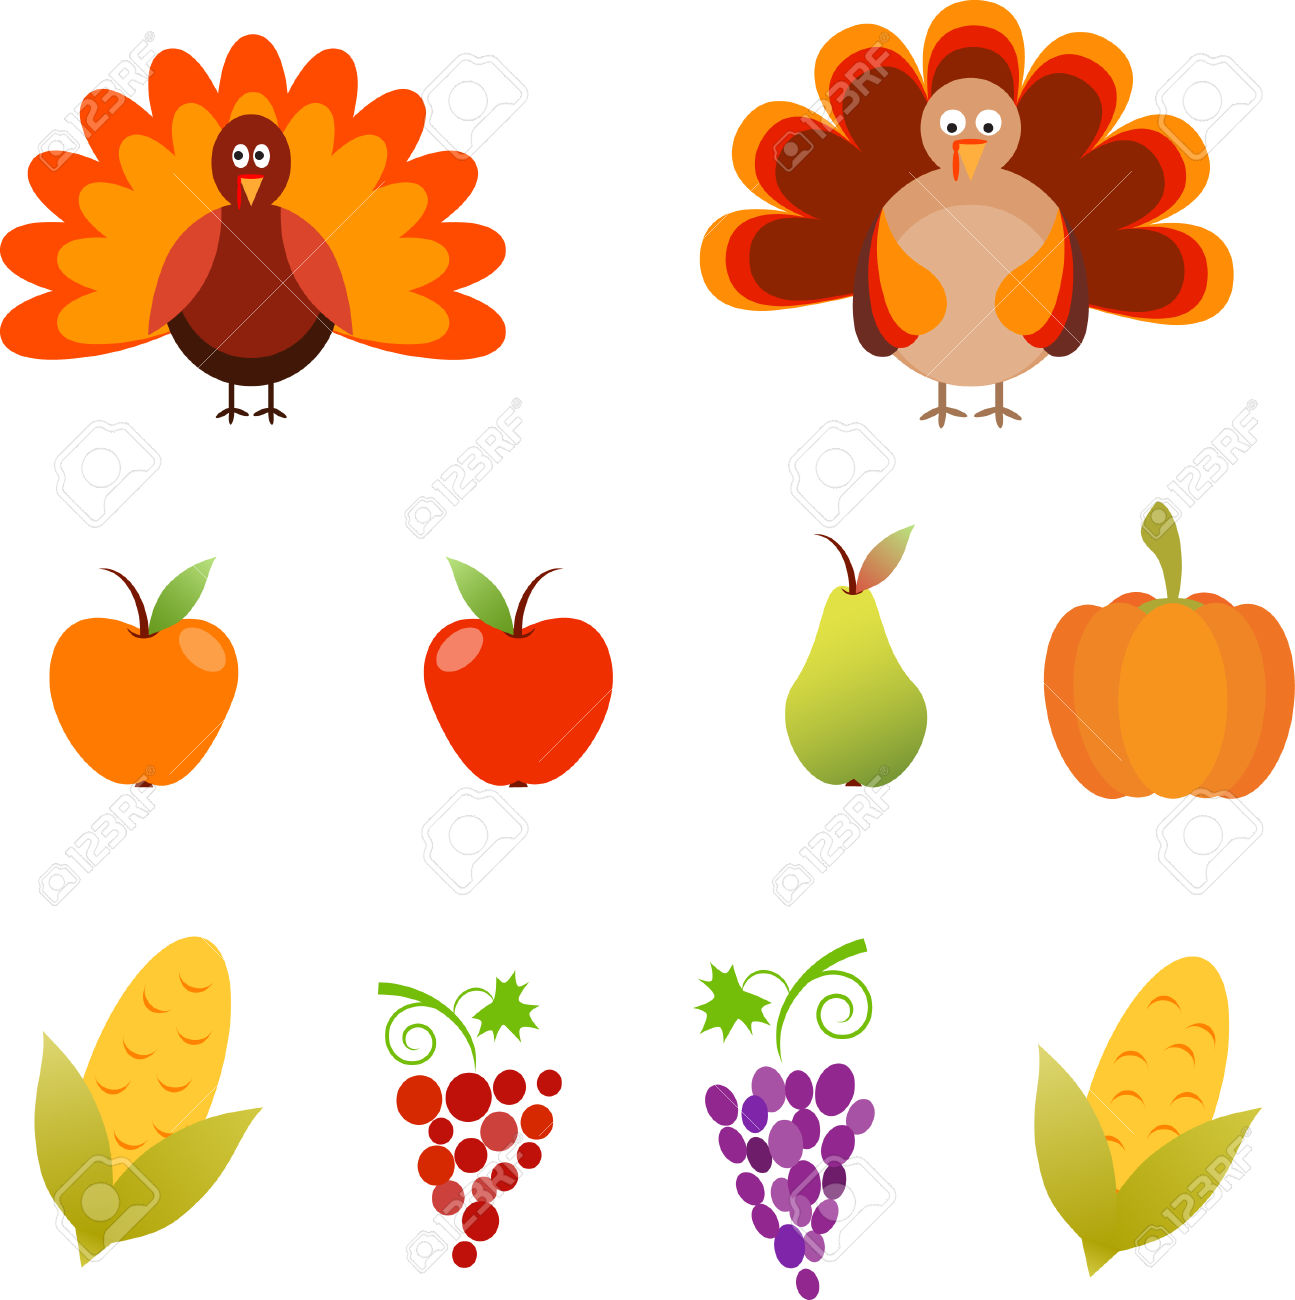 Turkey, Isolated Thanksgiving Turkey Vectors, Apples, Pear.